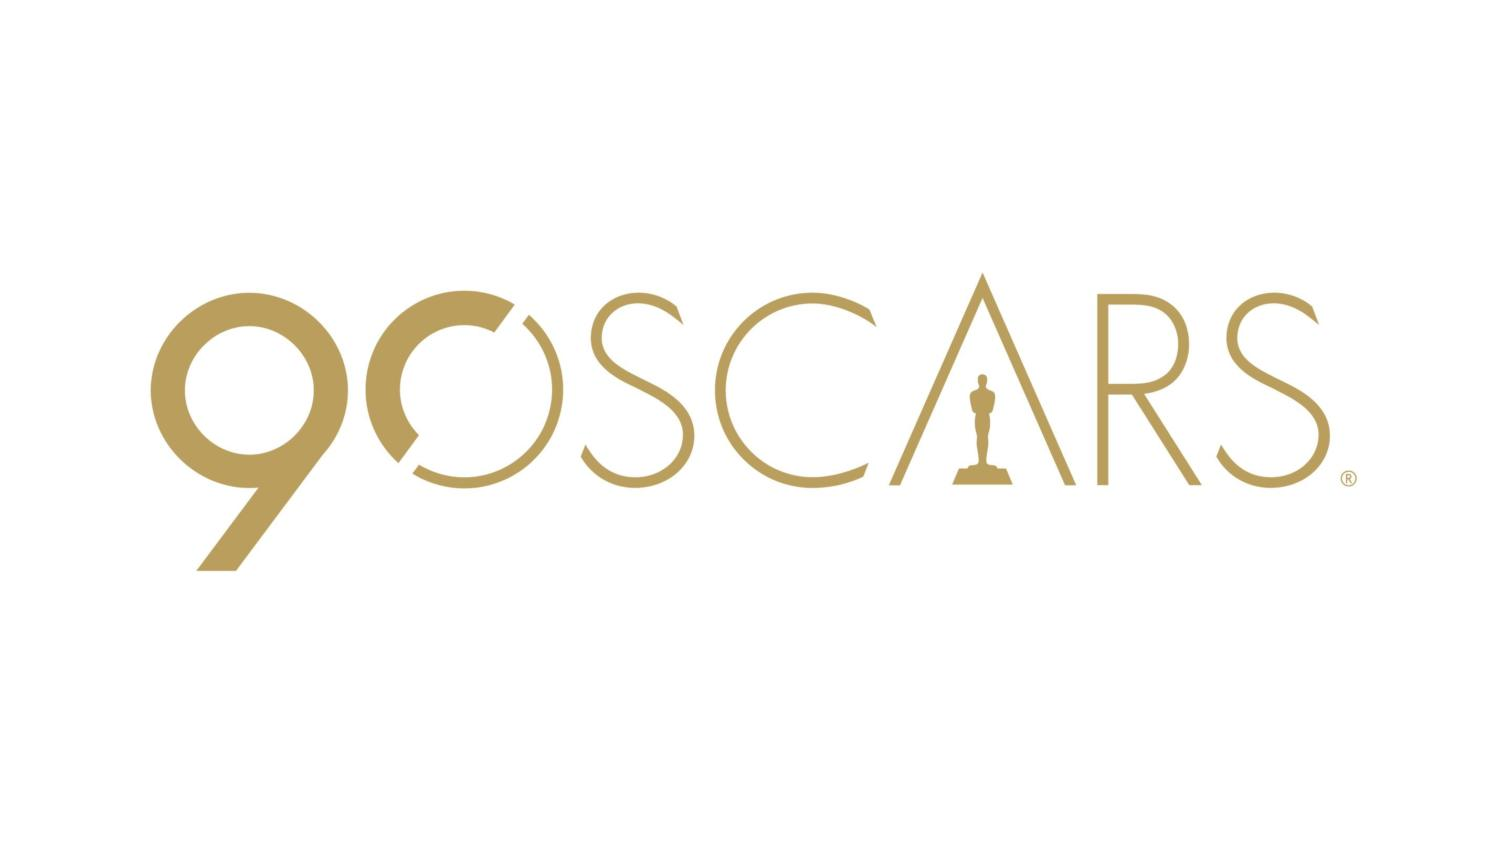 This year's Oscar nominees are great. But,, they aren't perfect. Photo Credit: Oscars.org